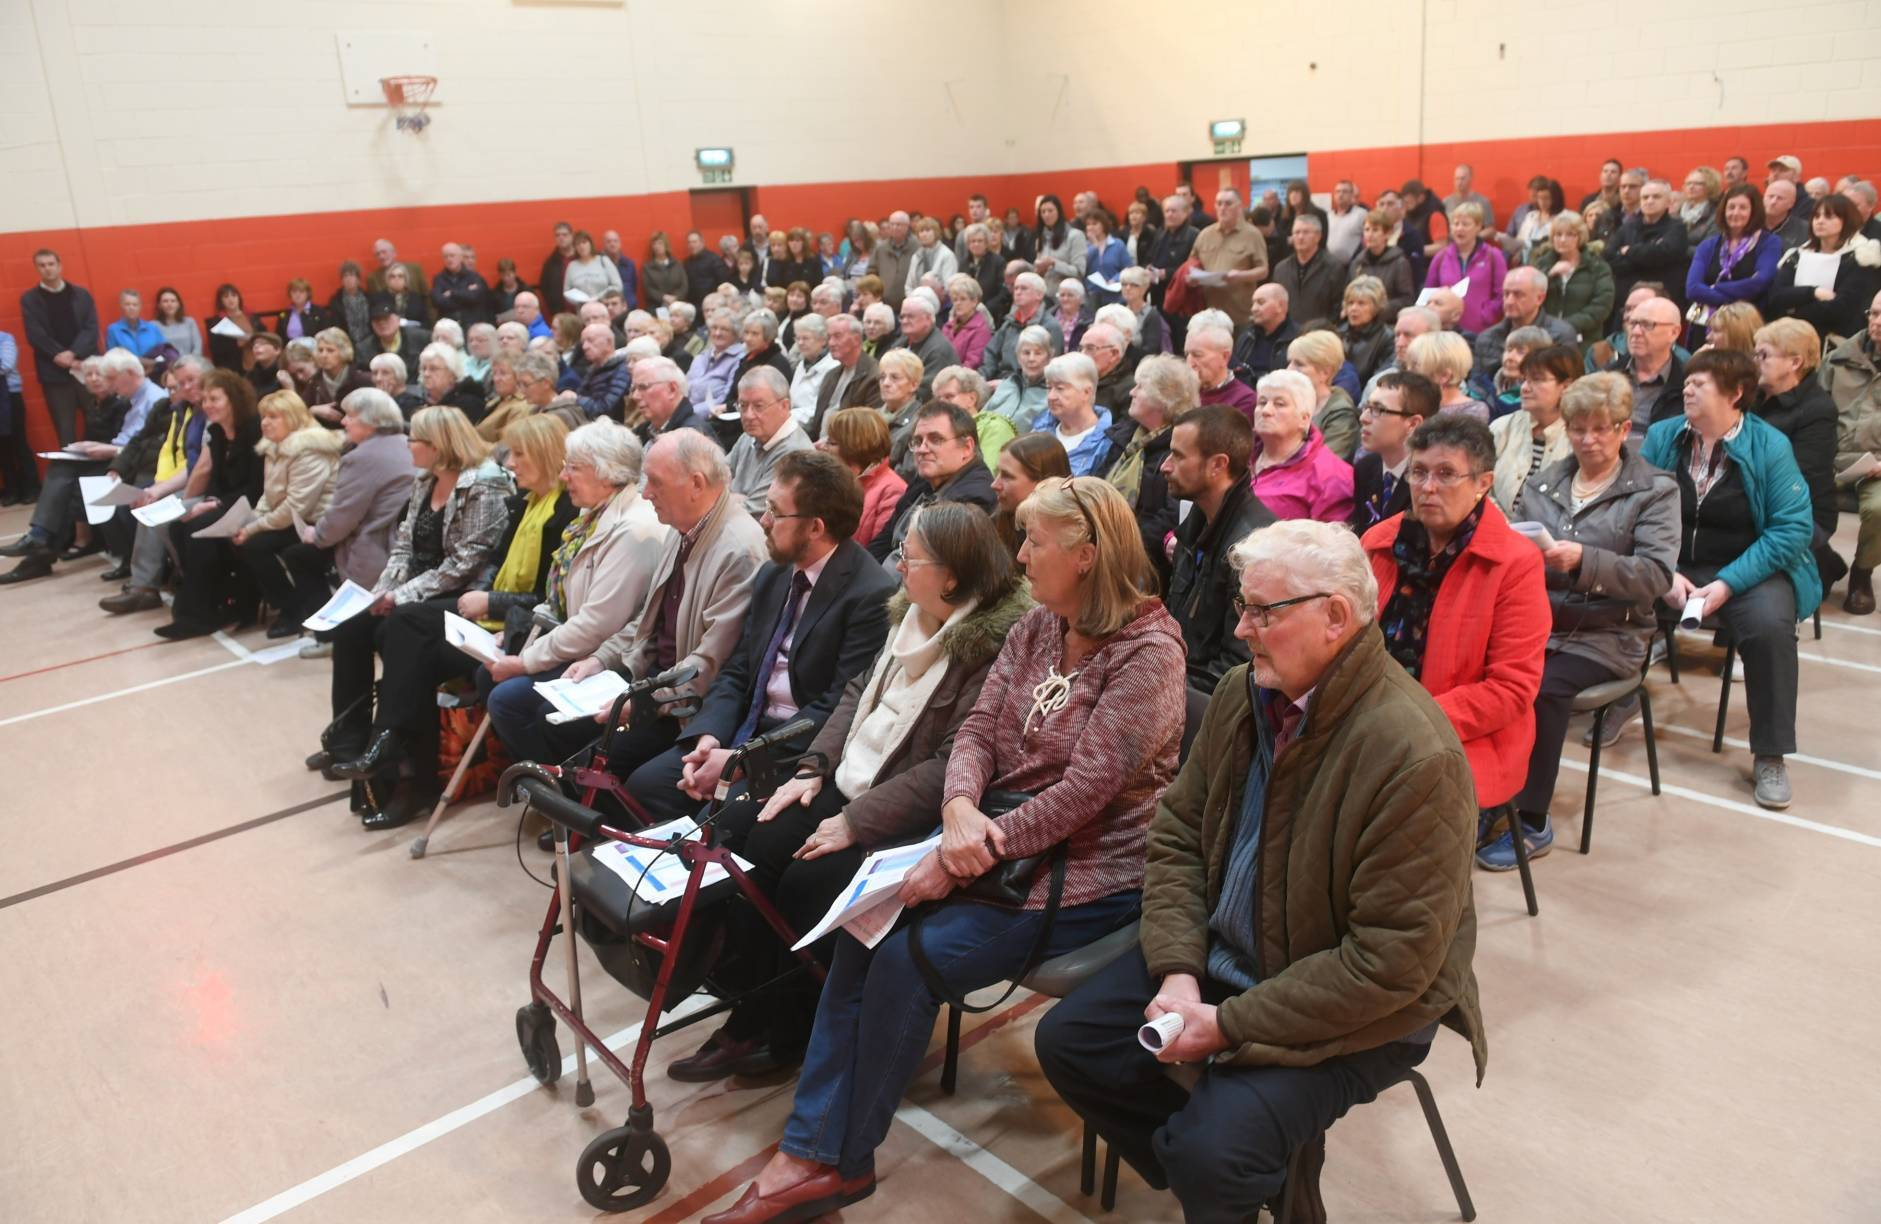 Around 250 people attended the meeting at Kingswells Community Centre.